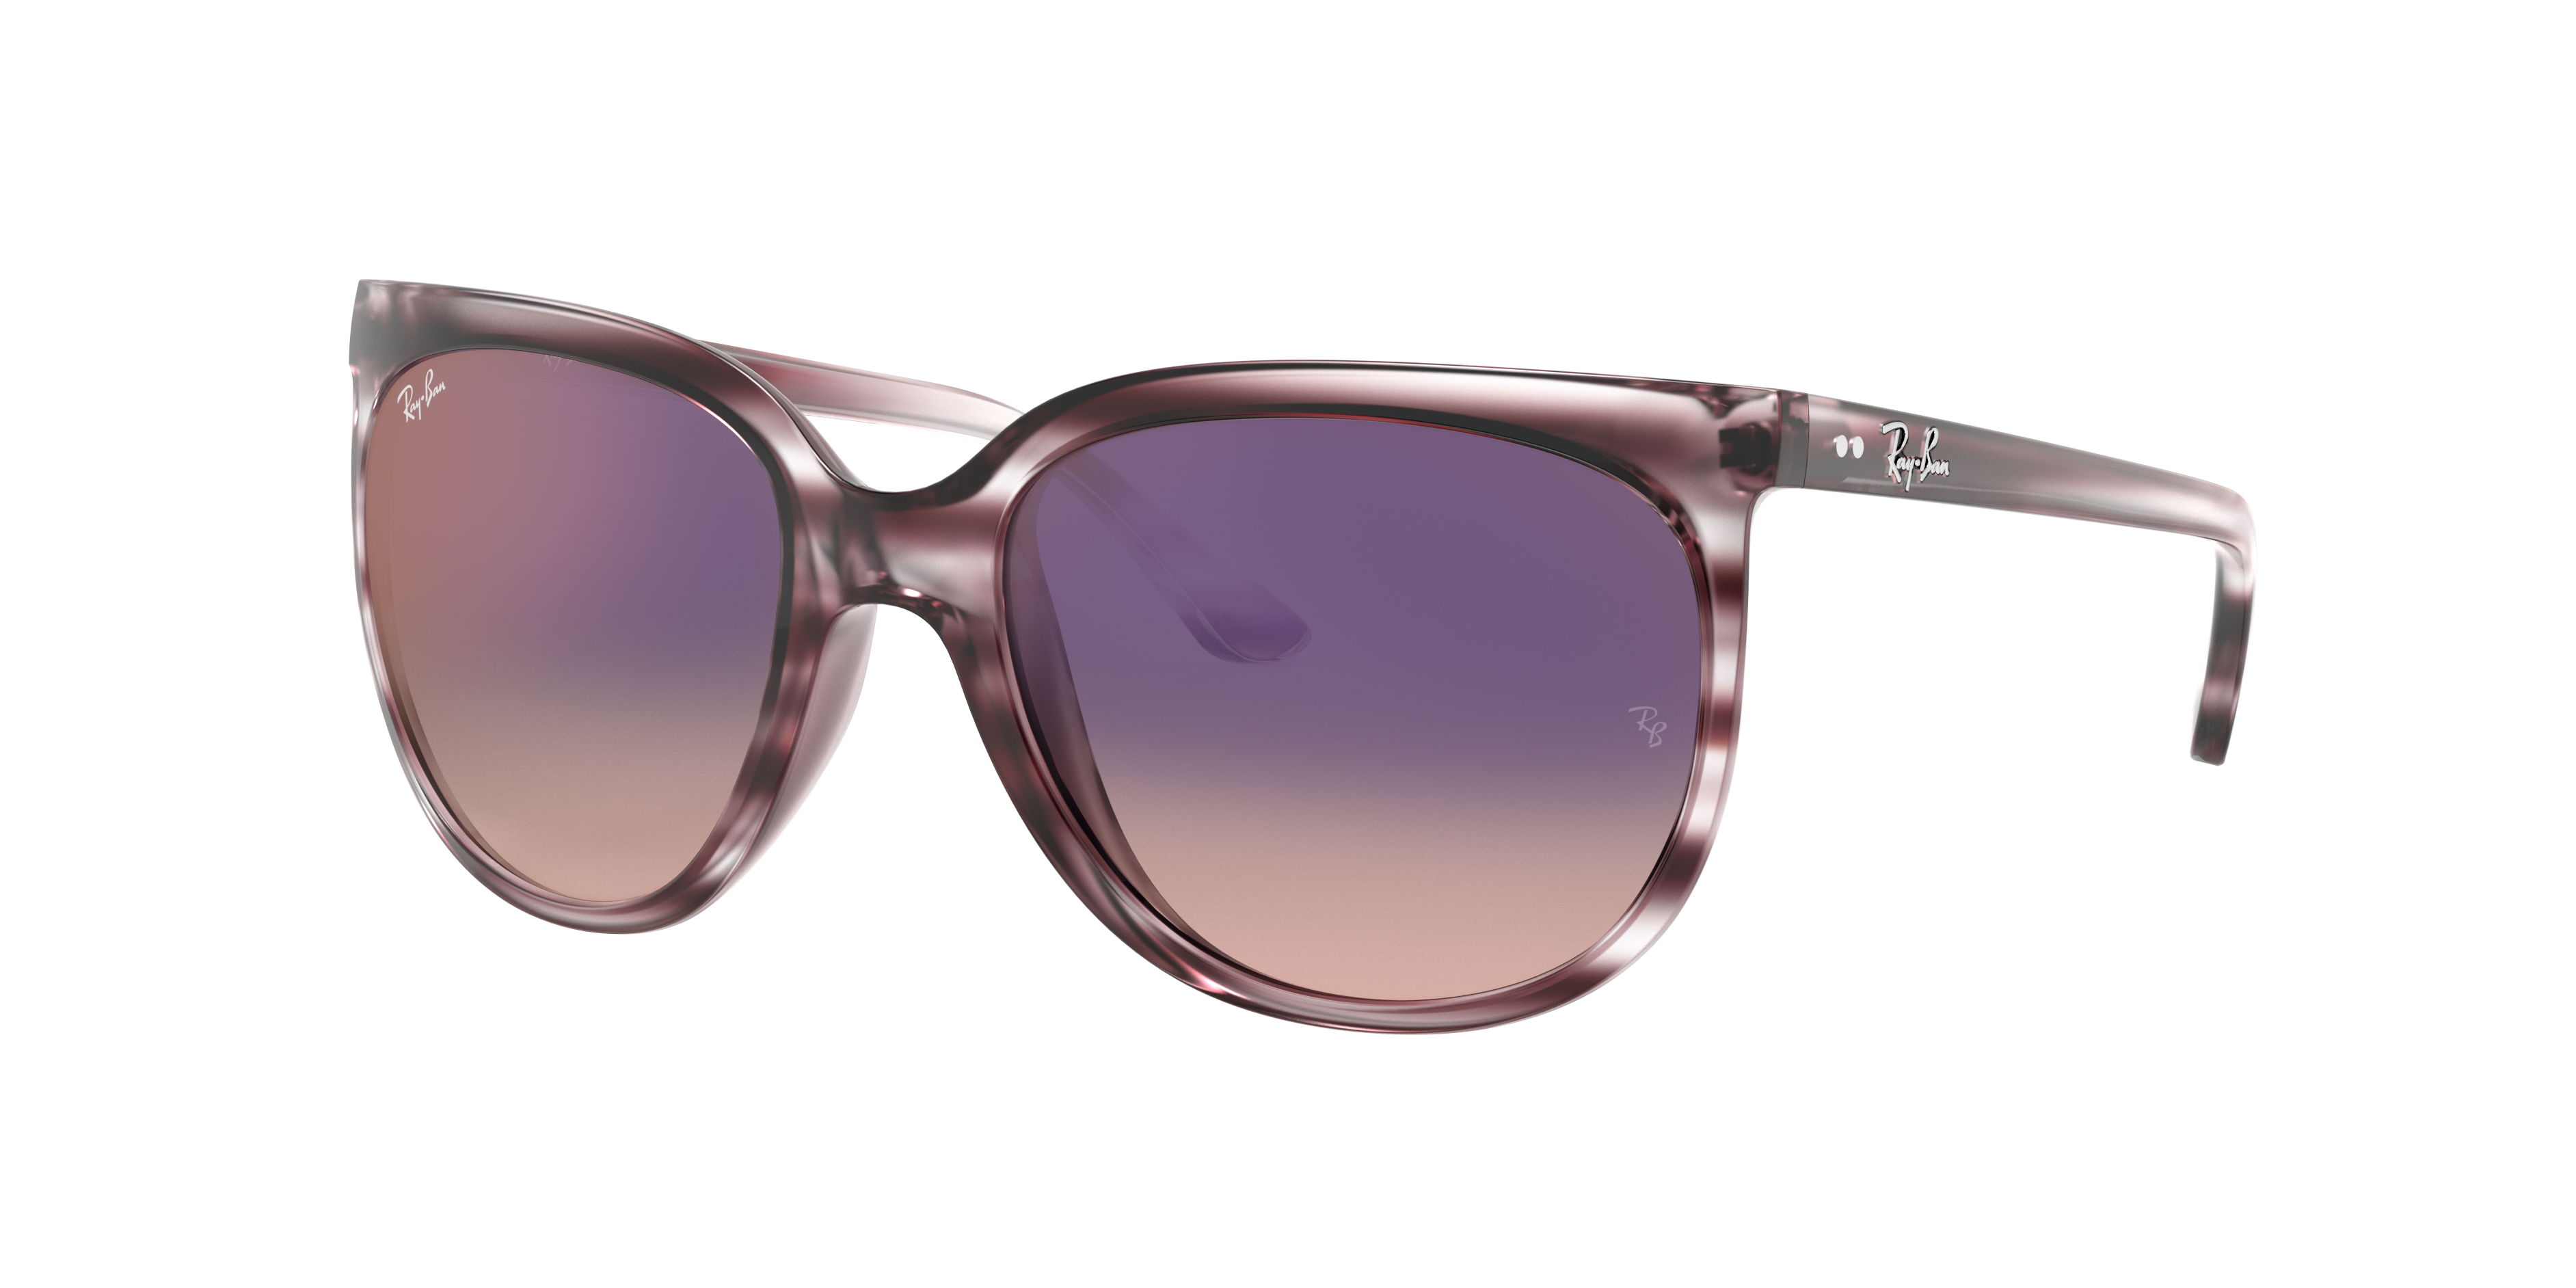 Ray-Ban Cats 1000 Striped Grey Gradient Brown, Violet Lenses - RB4126